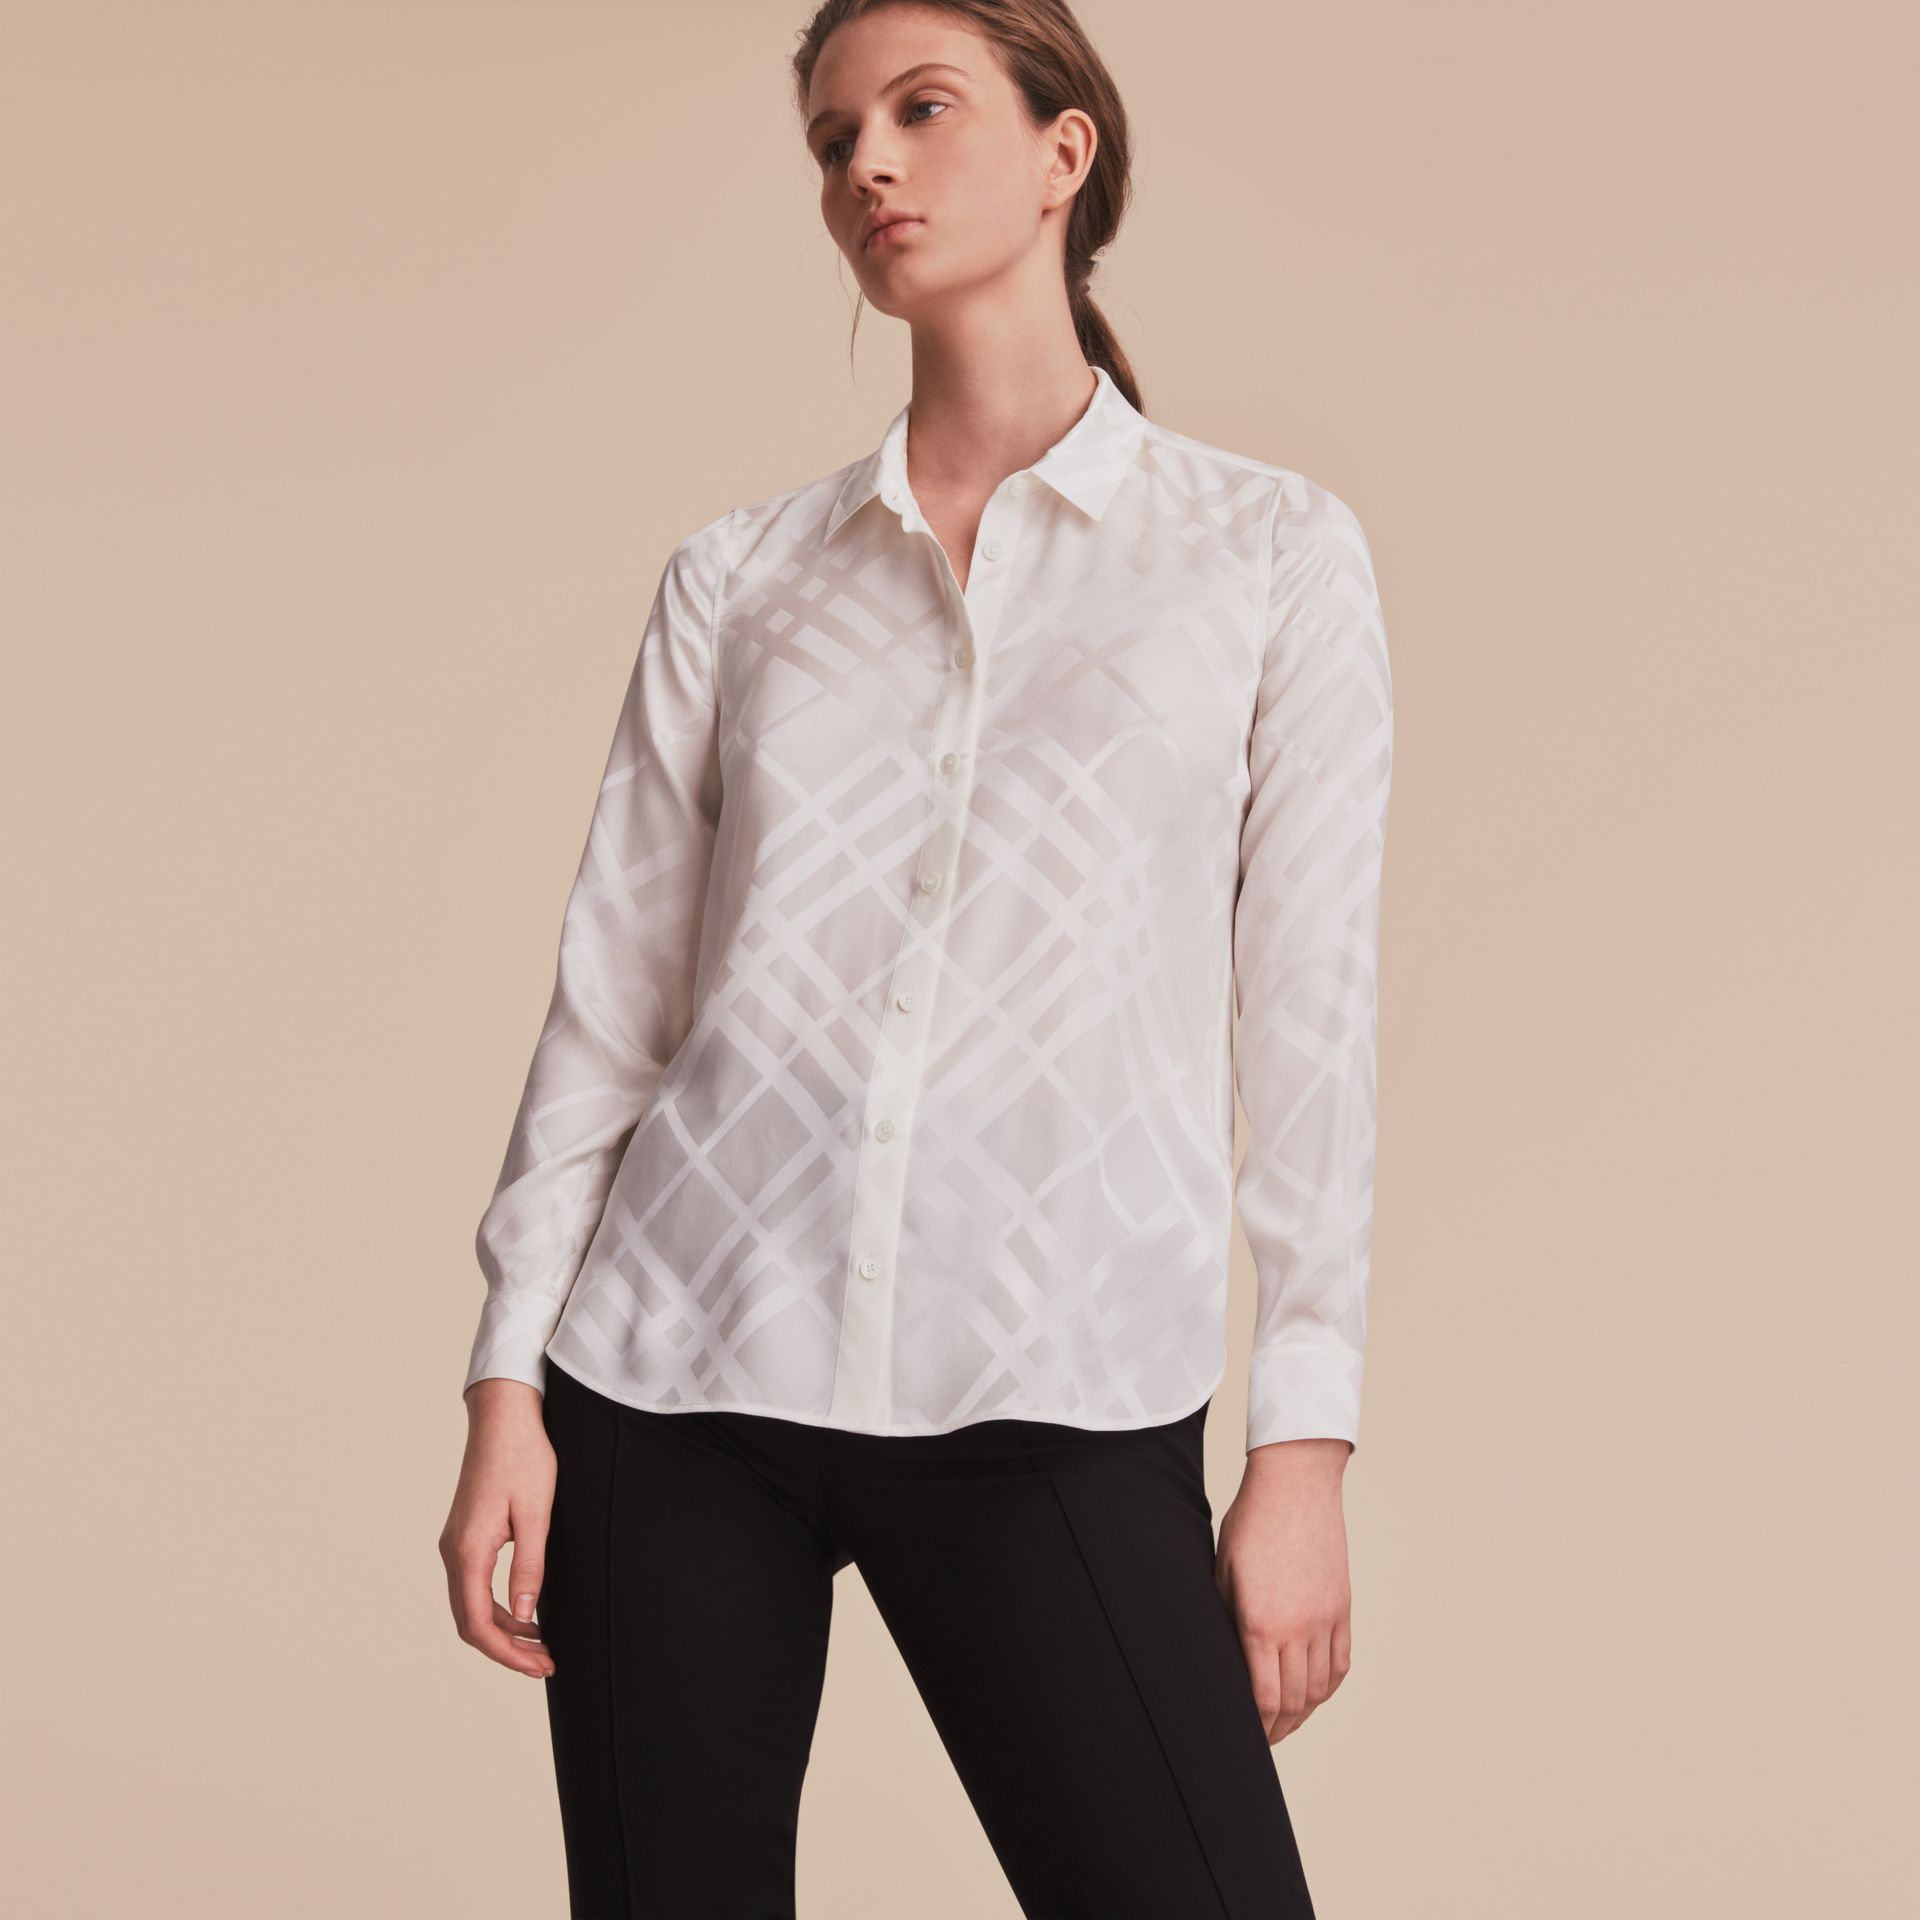 Tonal Check Silk Shirt in White - Women | Burberry - gallery image 6